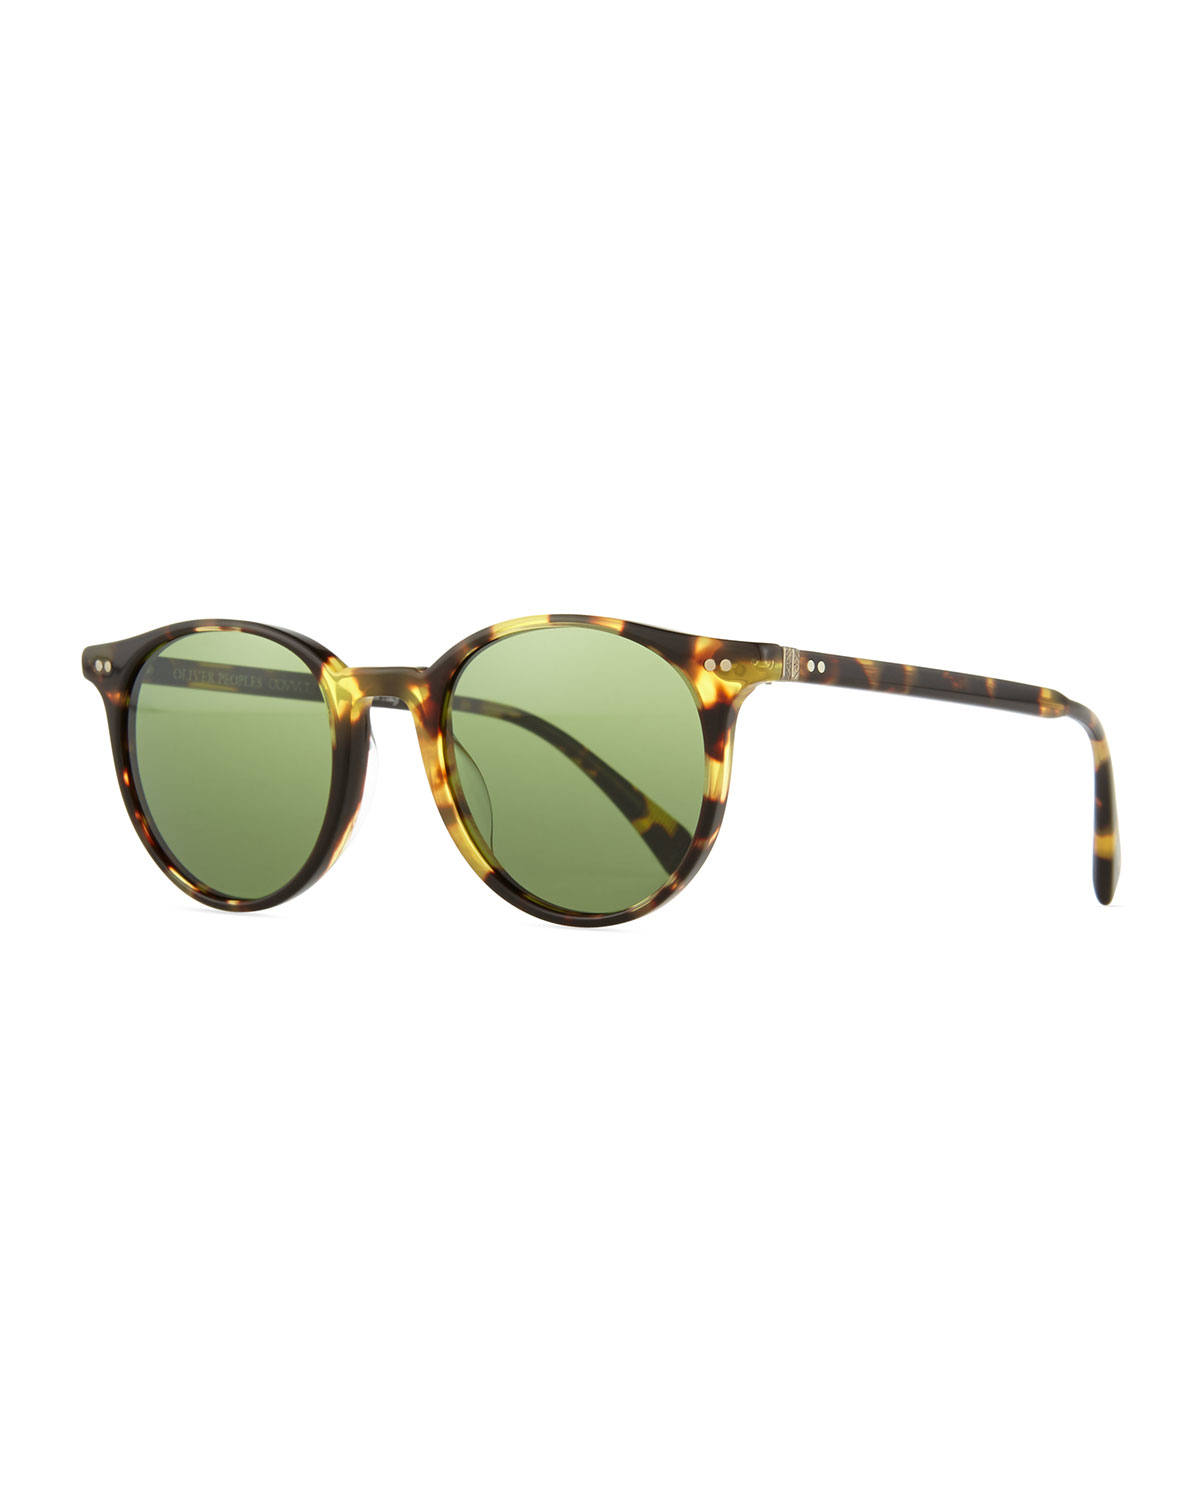 6479d05a91 Oliver Peoples Delray Sunglasses For Sale - Bitterroot Public Library